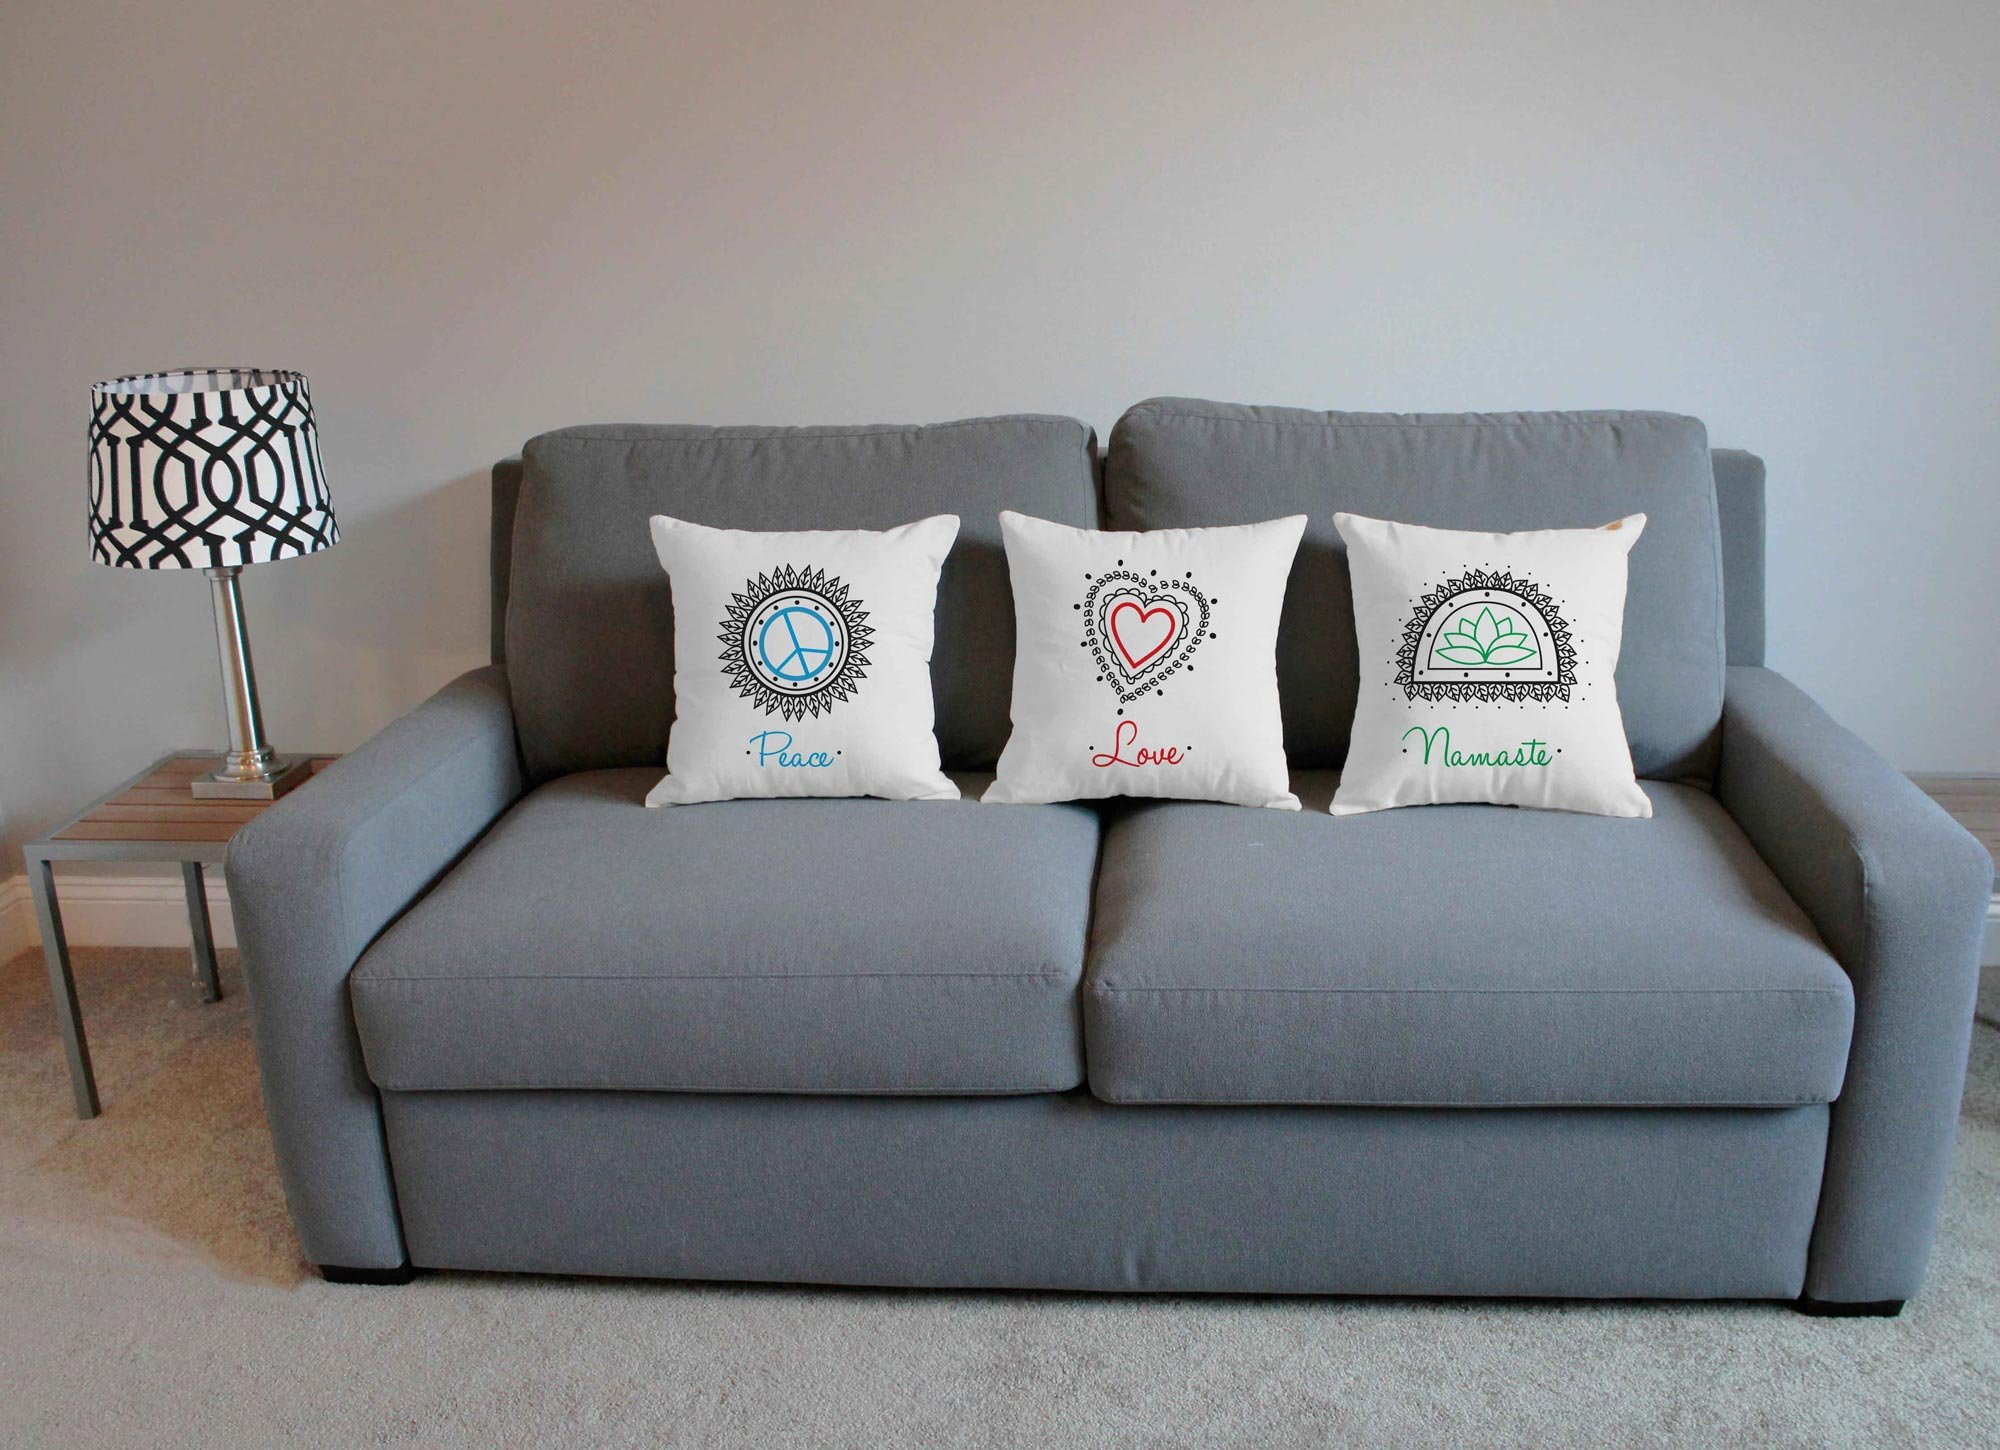 Set of 3 RoomCraft Peace Love Namaste Throw Pillow Covers 20x20 Inch Square White Outdoor Yoga Shams by RoomCraft (Image #5)